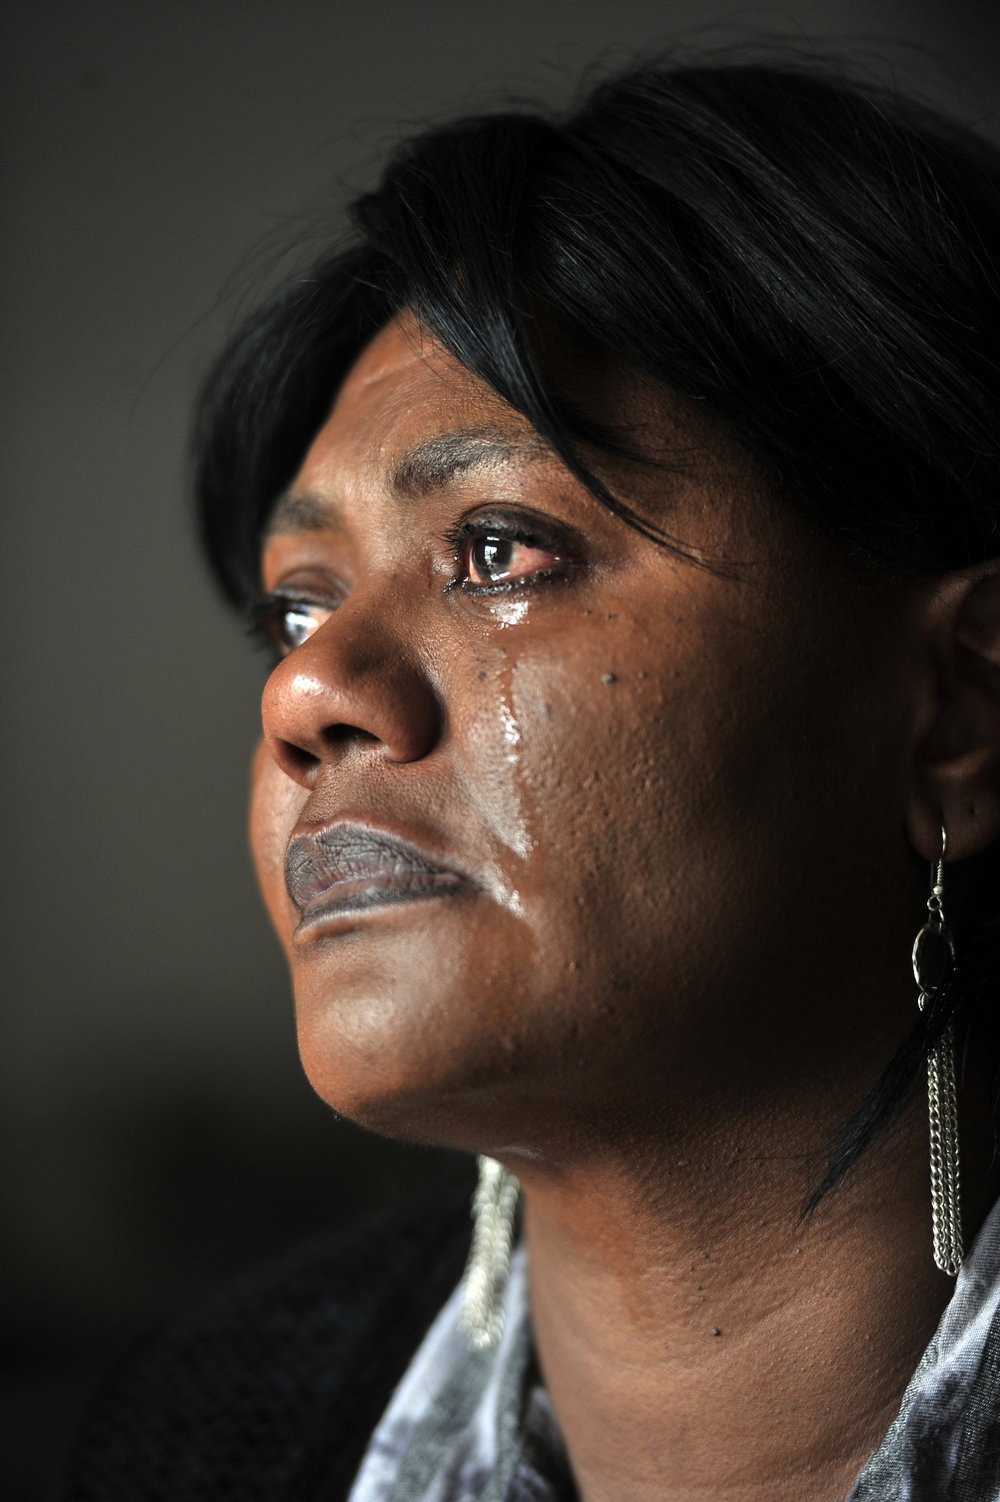 Sylvia Nolan, mother of LeRyan Nicholson, cries as she describes the years she has spent searching and waiting for her 18-year-old son April 19, 2013. Police recently confirmed that her son was a murder victim buried as a John Doe.